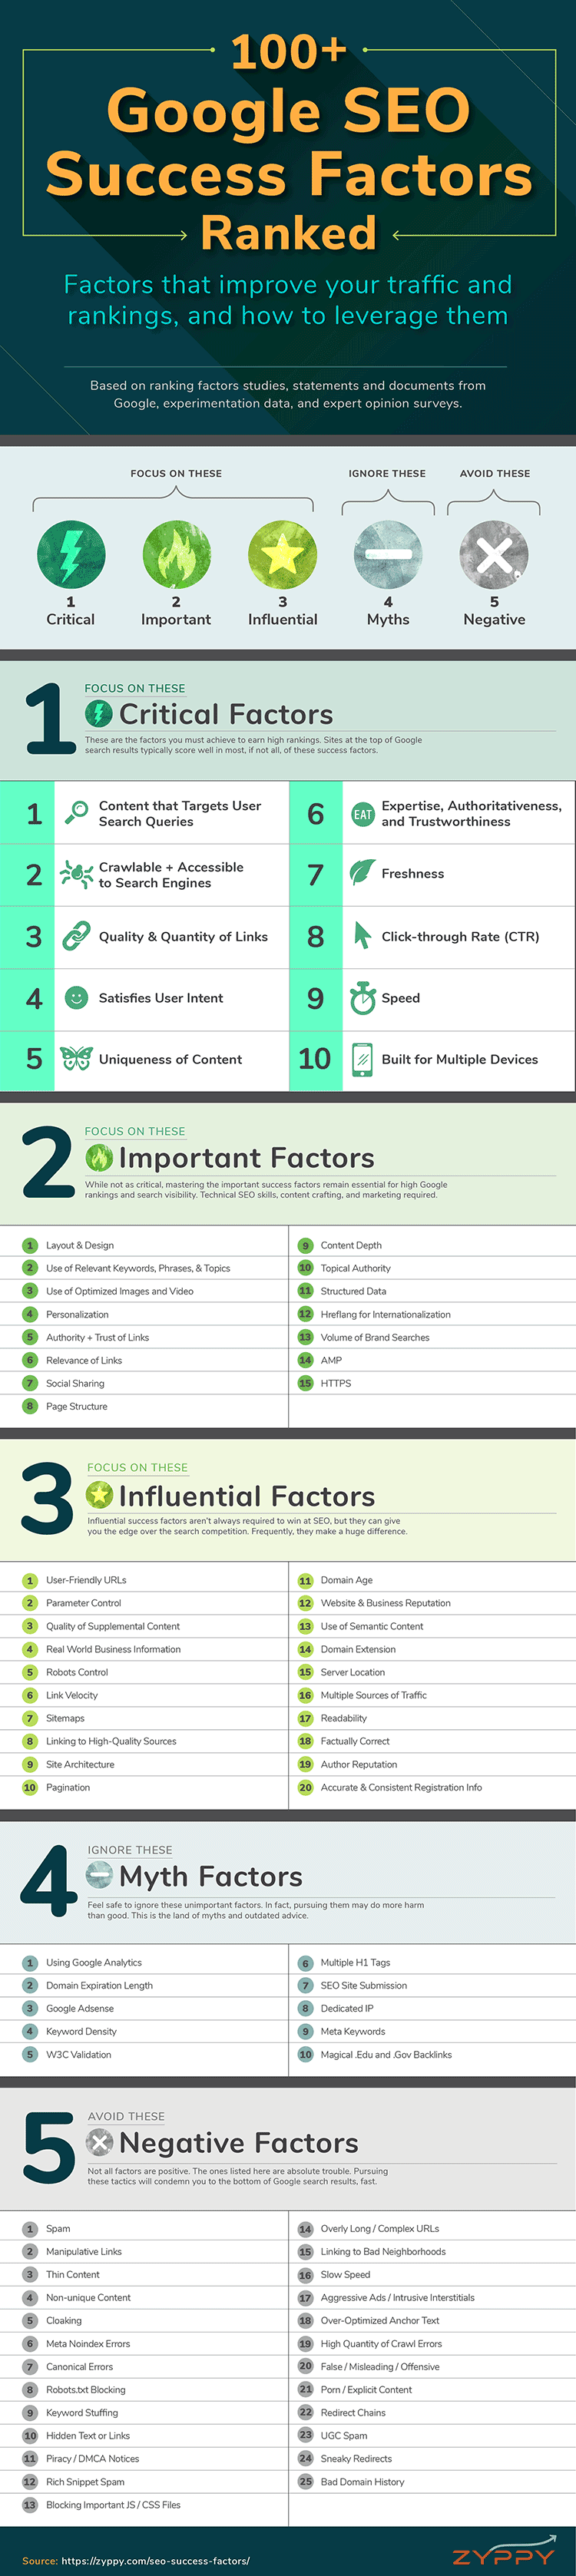 100 google seo success factors - Google Search